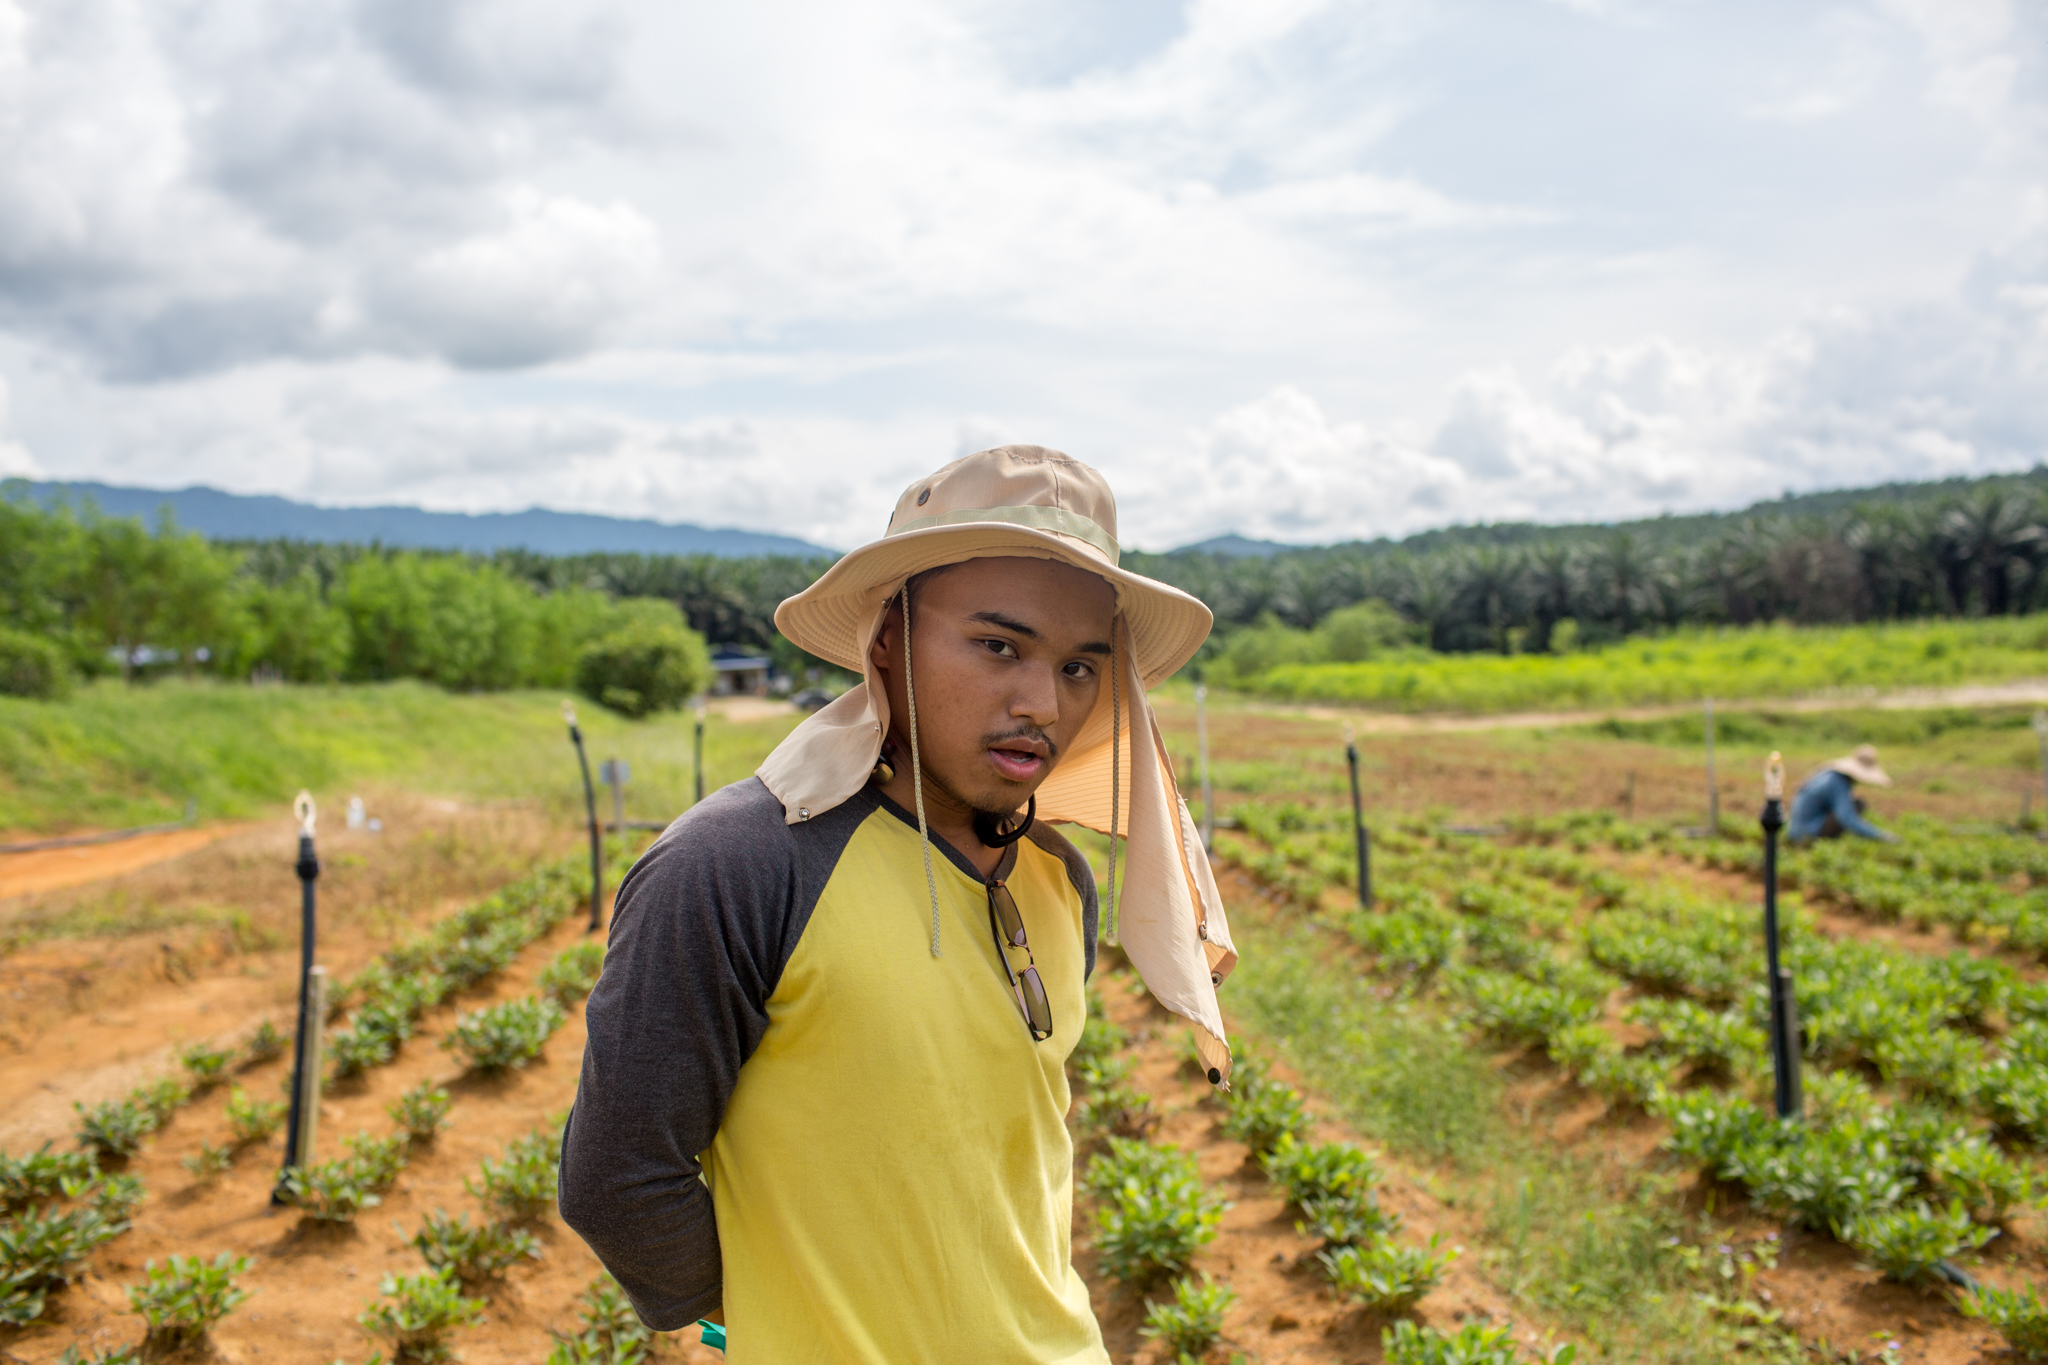 A farmworker stands in a field of Bambara groundnut.